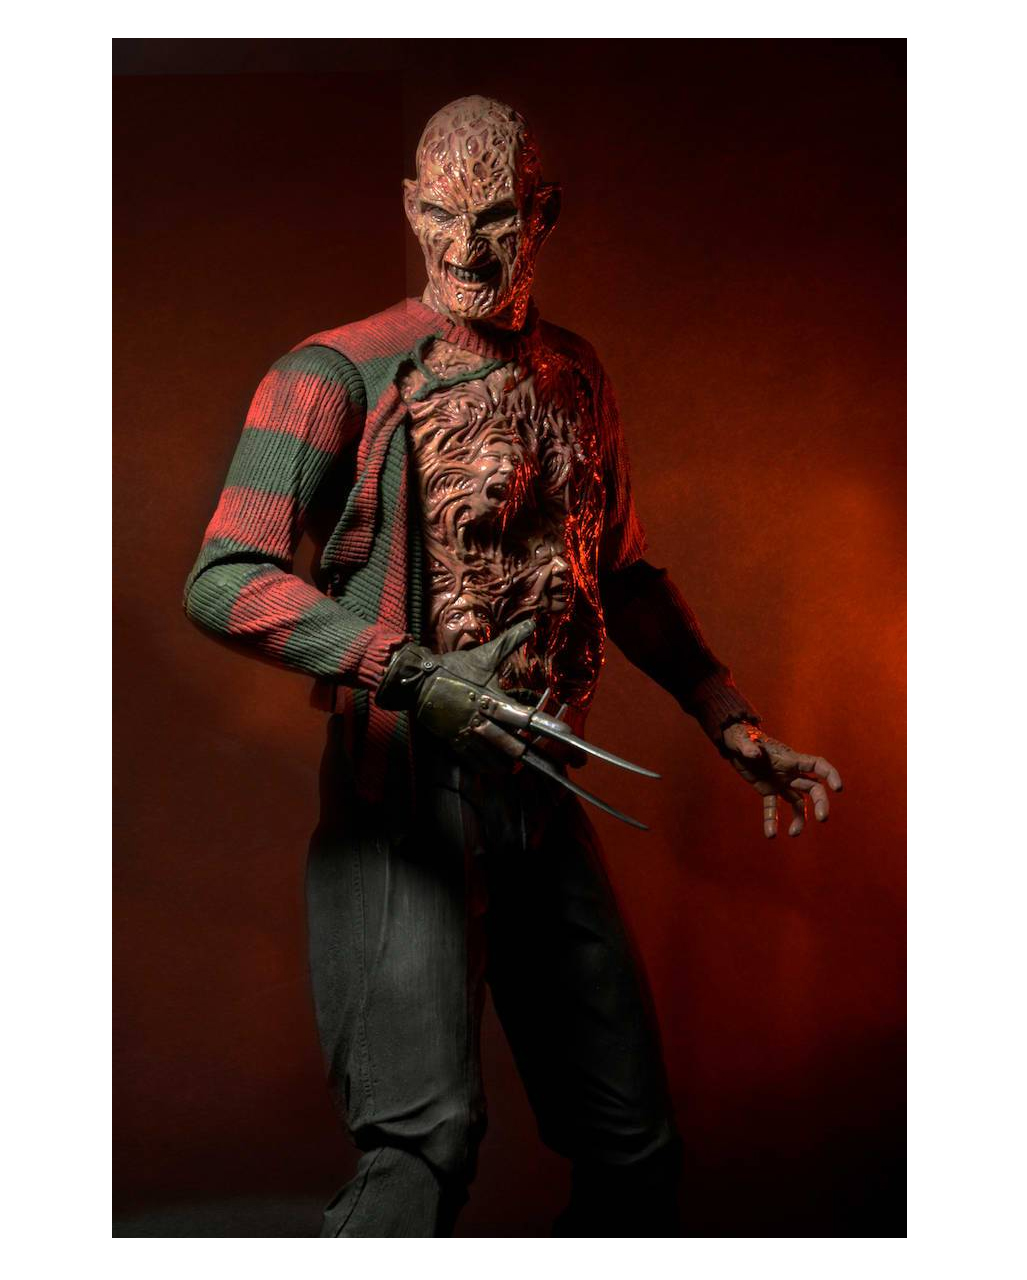 Freddy Krueger Halloween Decorations